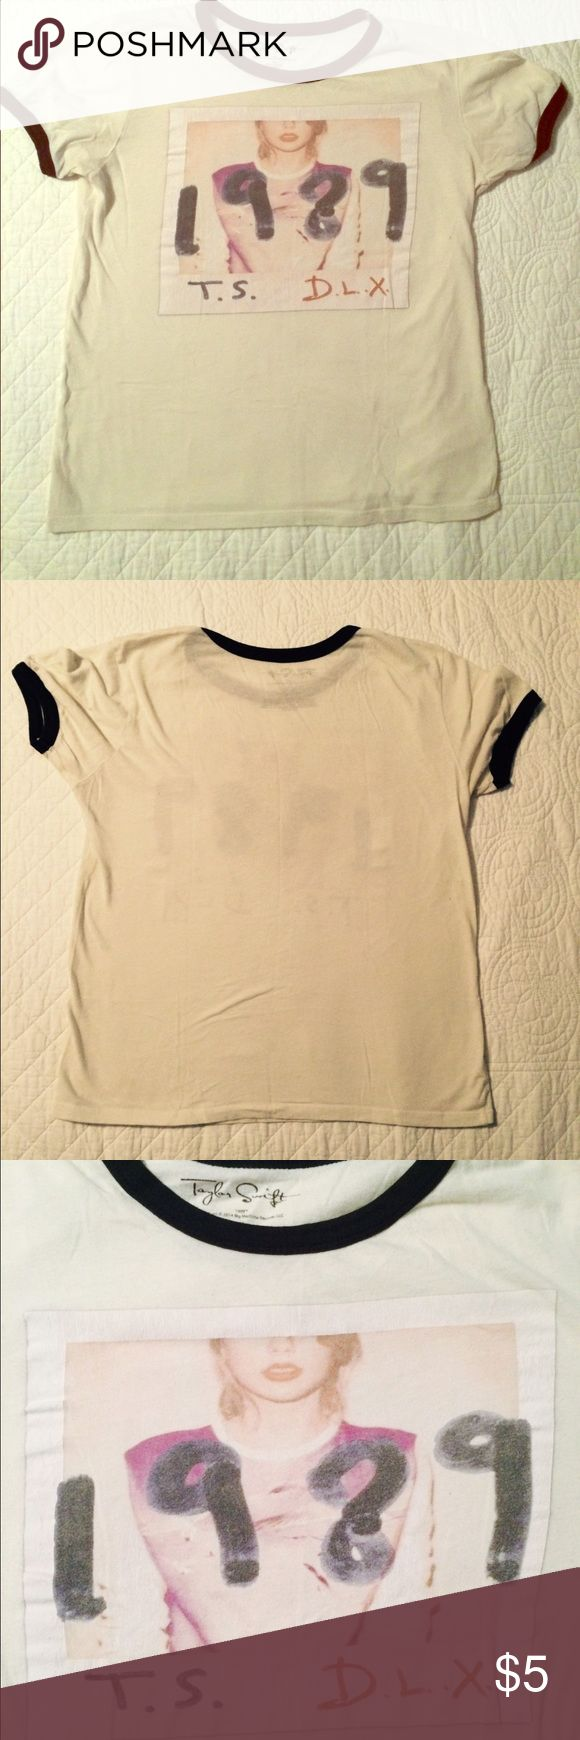 Taylor swift album cover top. Cute Taylor swift 1989 album cover tee, it is a natural color with a black neckline and sleeves. If you require any further information, let me know. Taylor Swift  Tops Tees - Short Sleeve